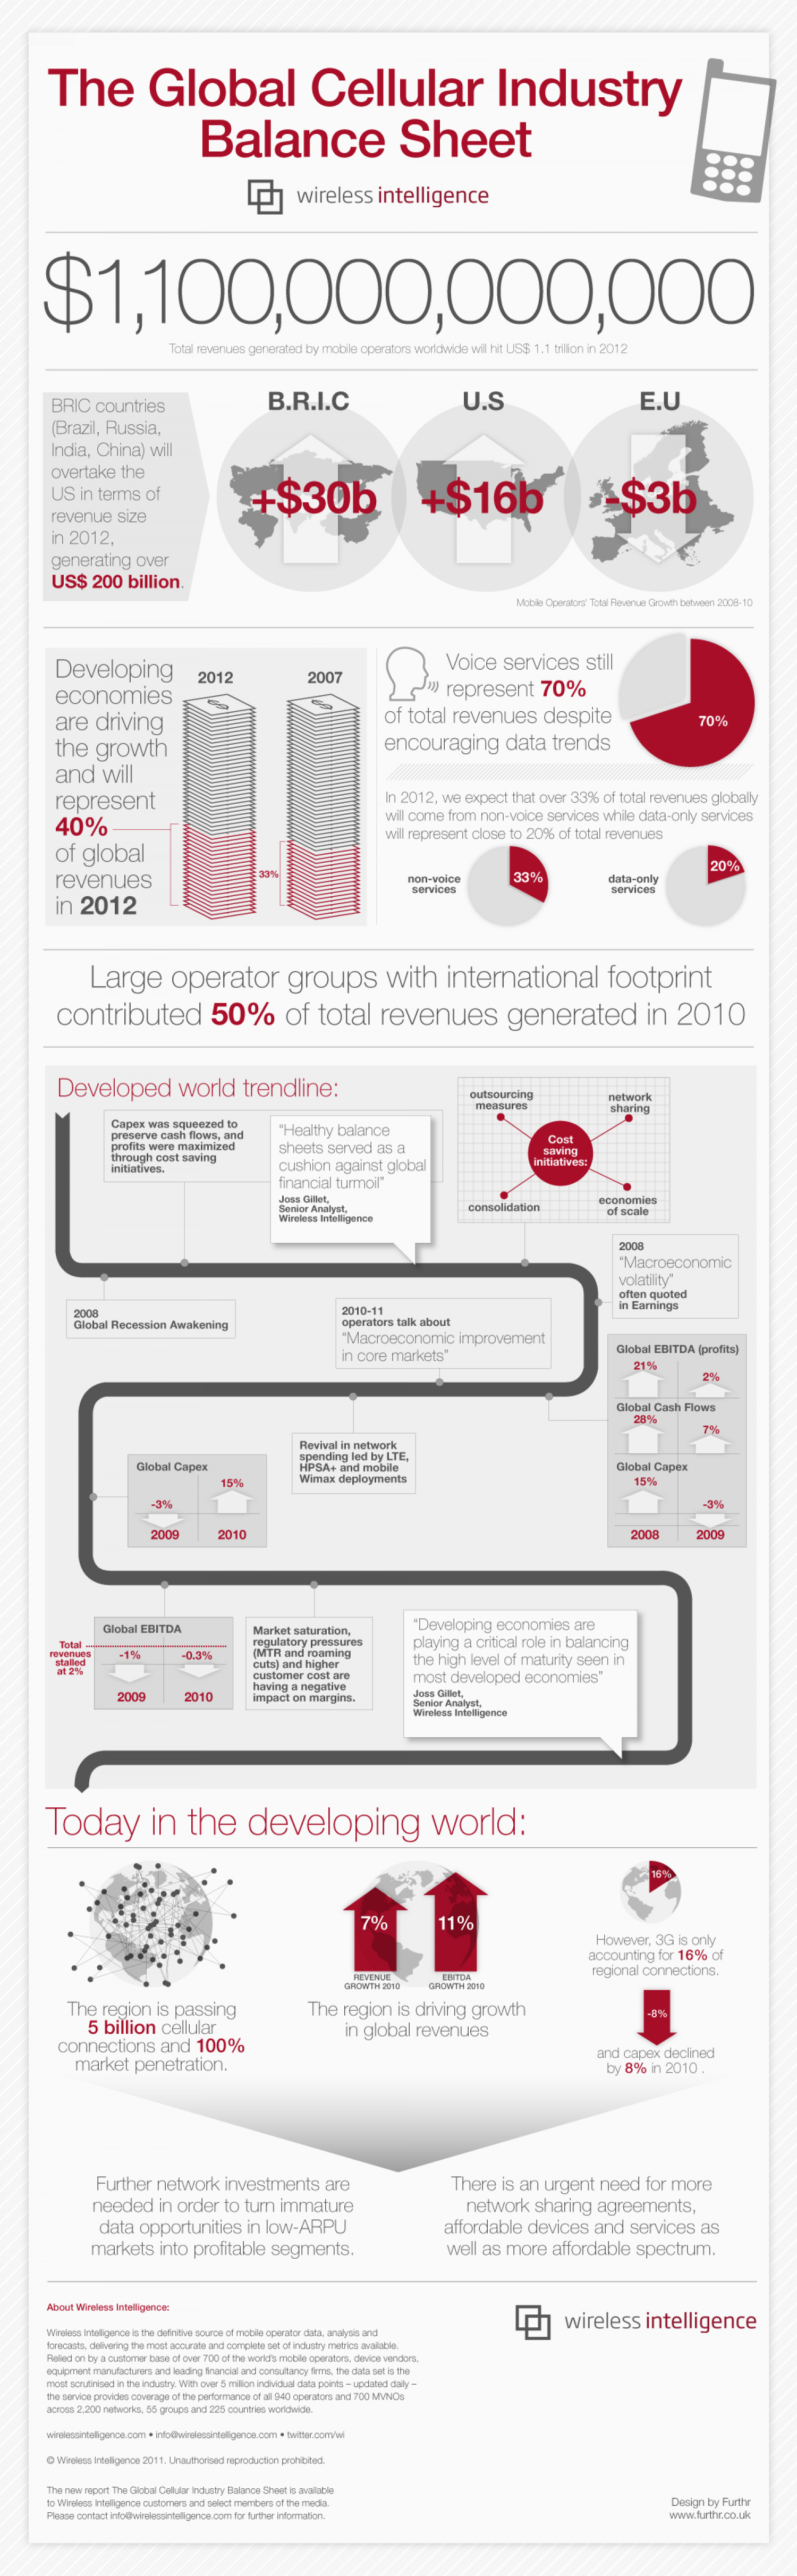 The Global Cellular Industry Balance Sheet Infographic